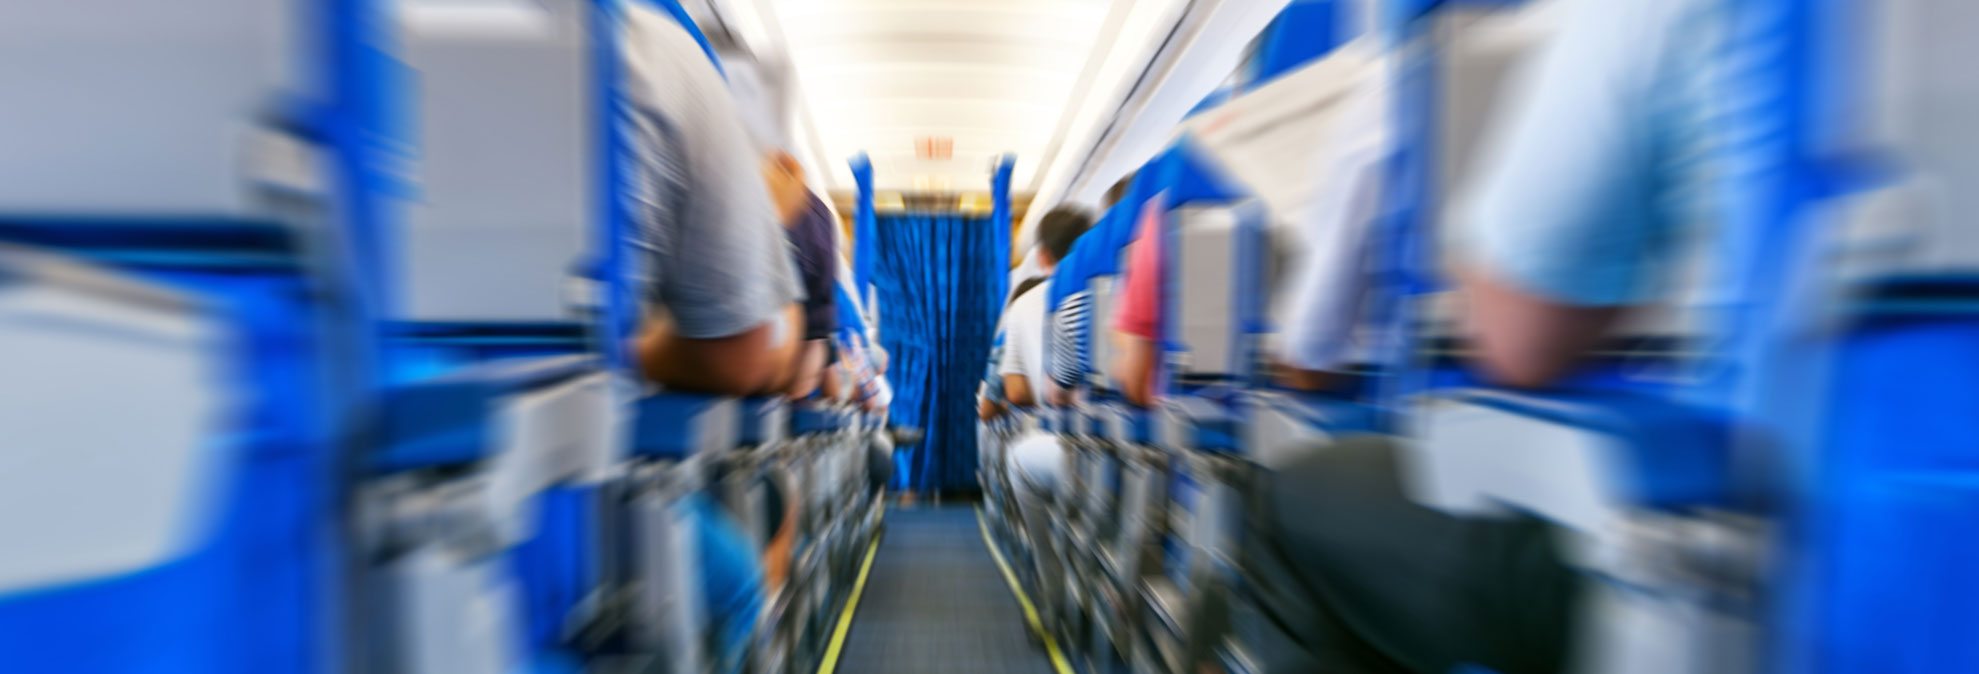 5 Ways to Get More Leg Room on Your Next Flight for Free